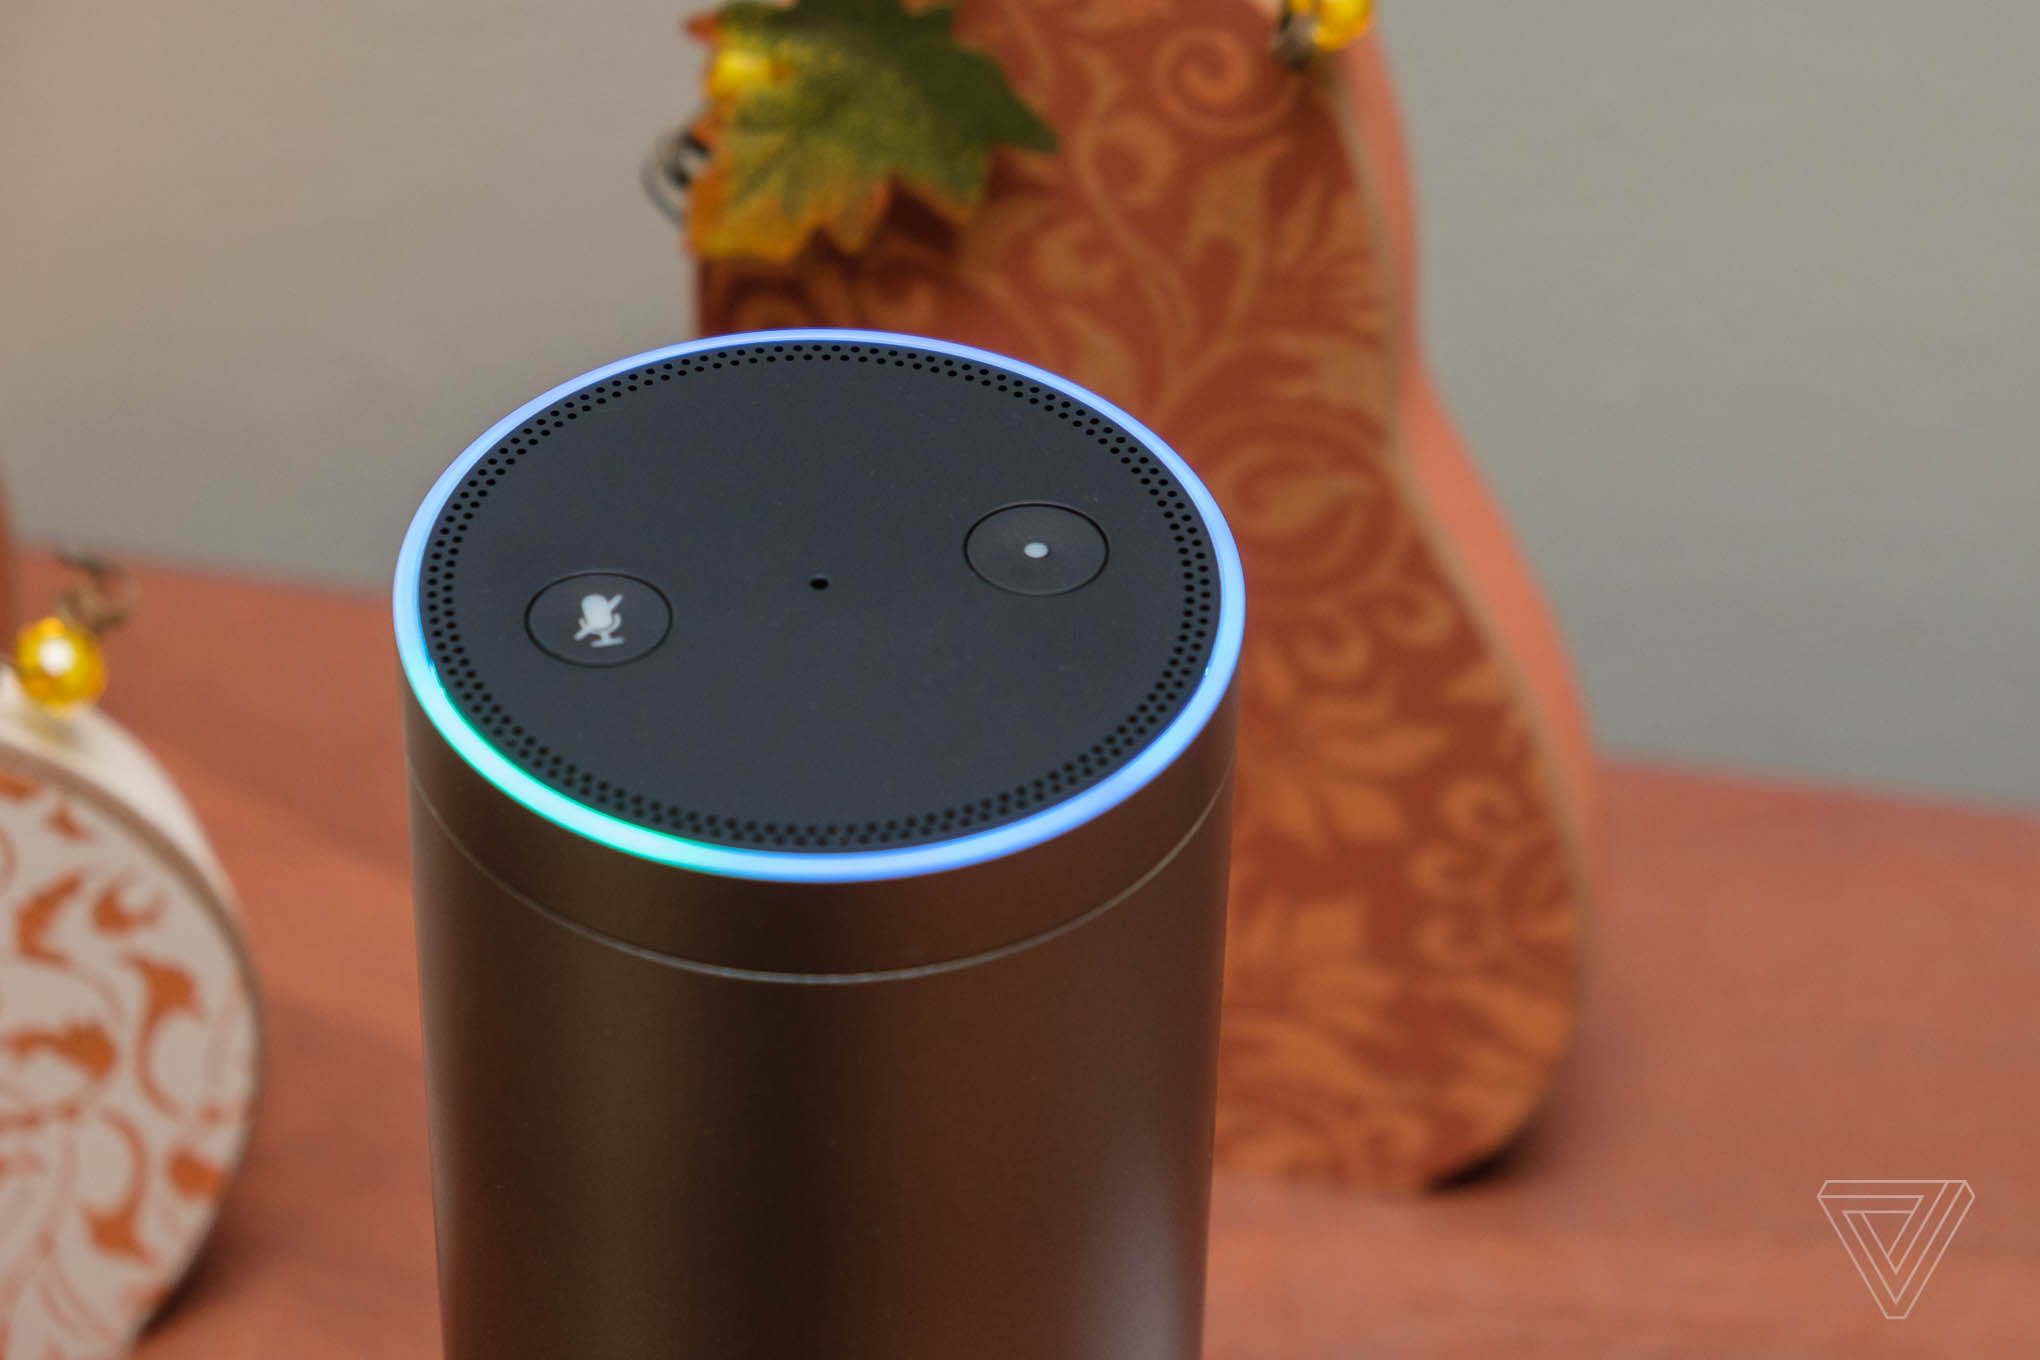 Add Ally Bank to Amazon's Alexa partners